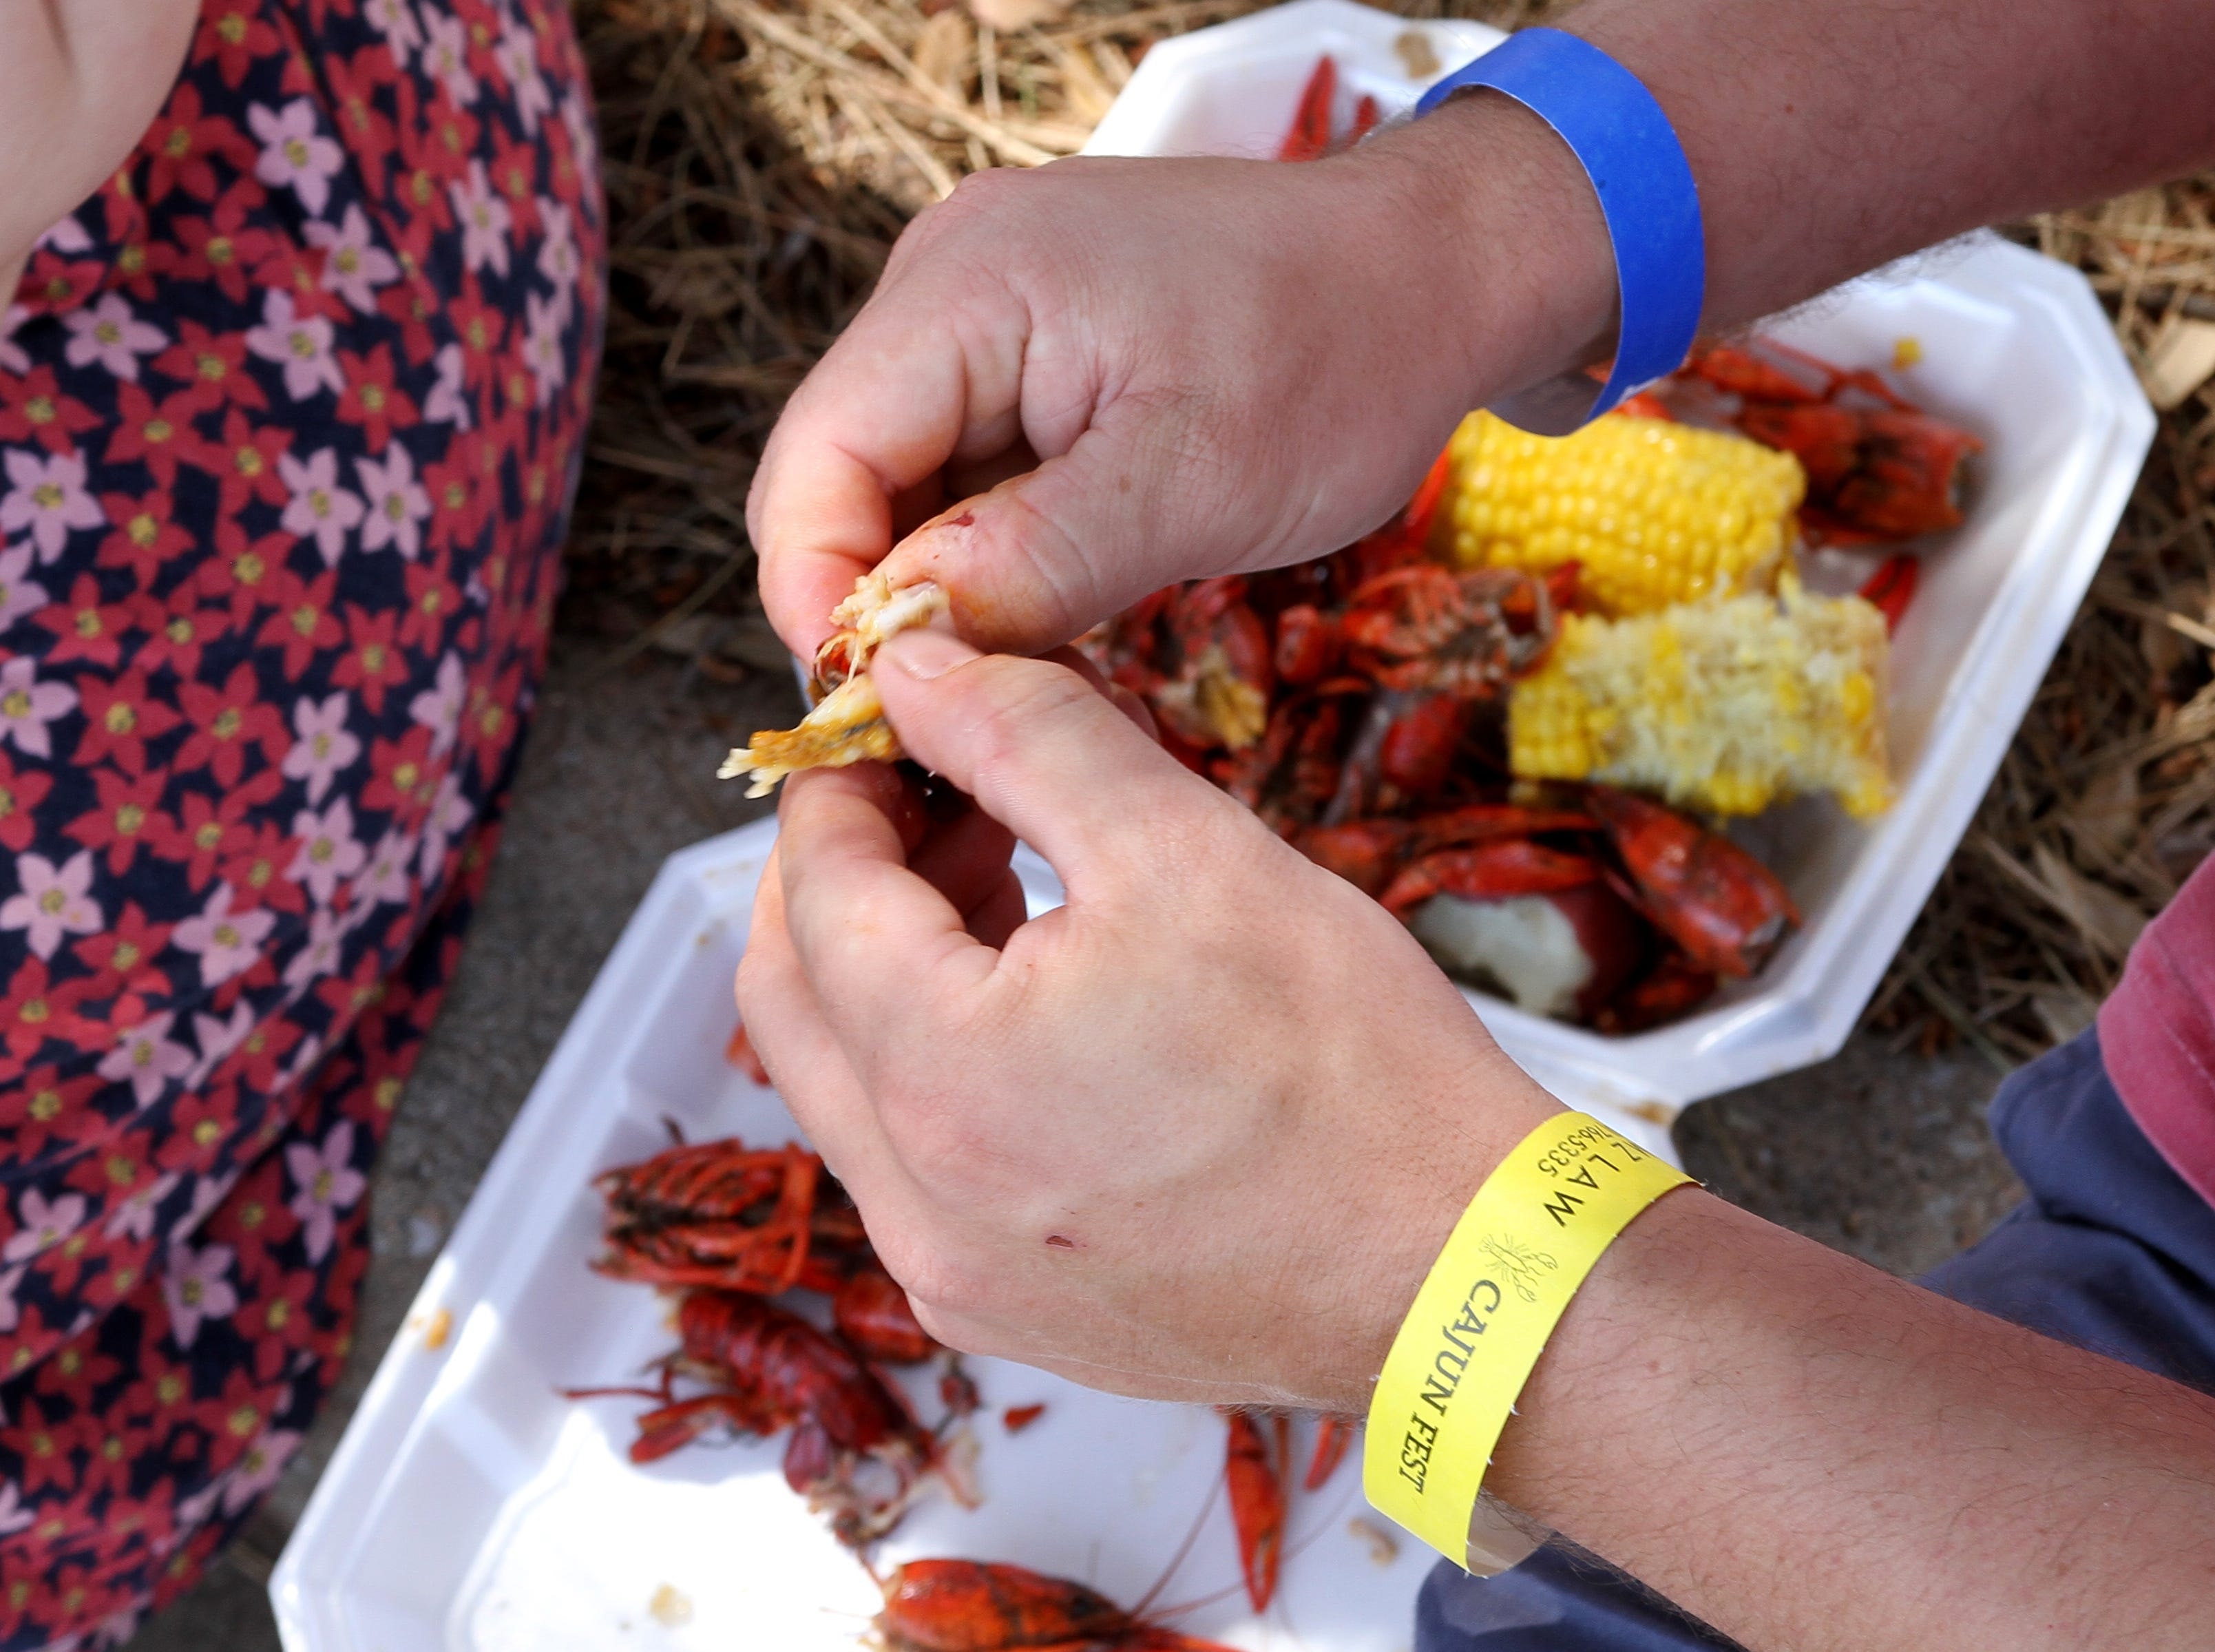 Thousands of pounds of crawfish was sold and eaten at Cajun Fest Saturday, April 27, 2019, at 10th and Ohio downtown.